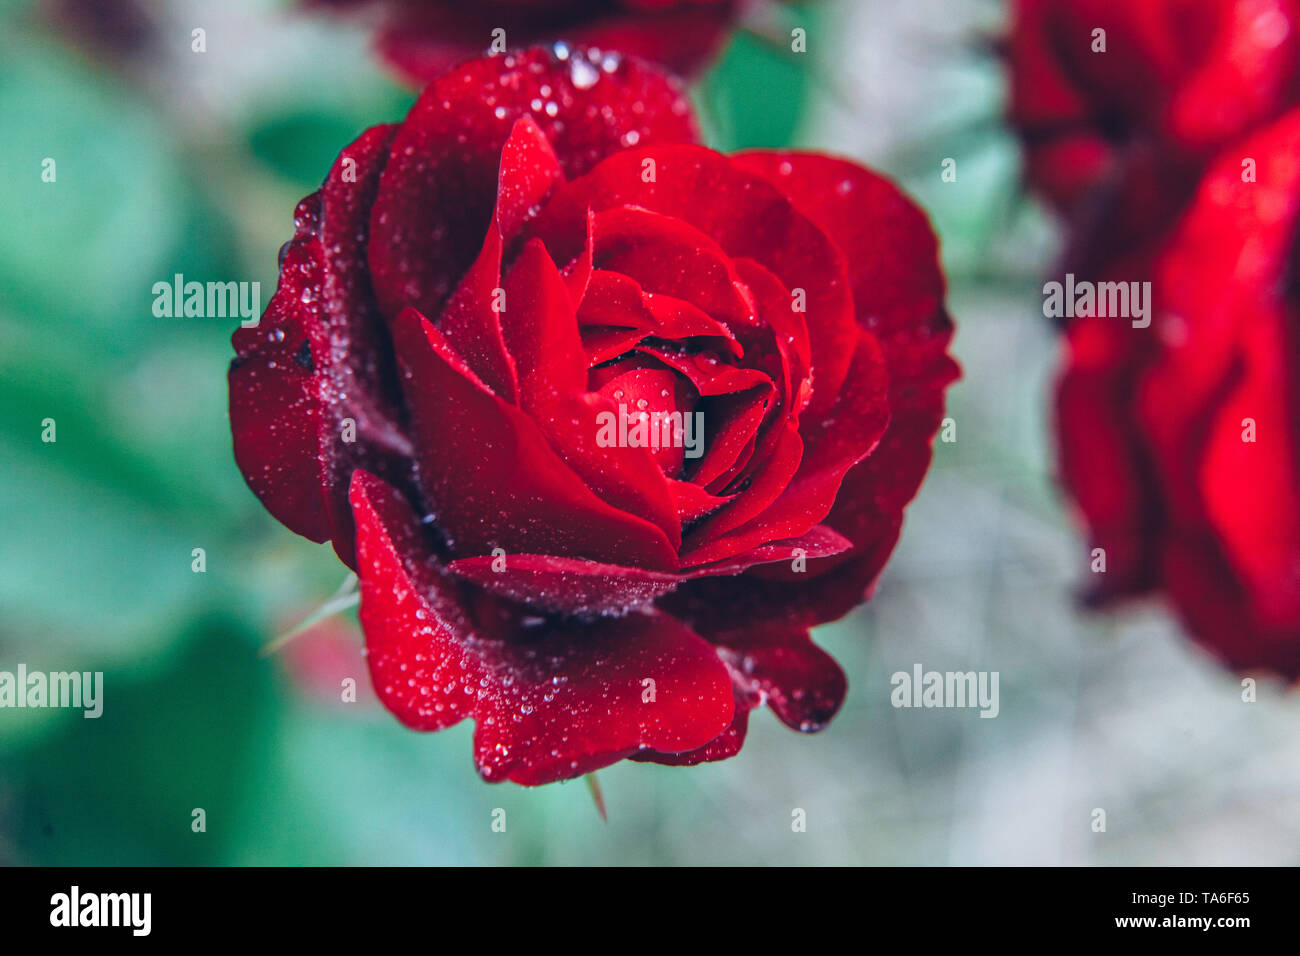 Beautiful red rose flowers with drops after rain in summer time. Background with flowering scarlet roses. Inspirational natural floral spring blooming - Stock Image